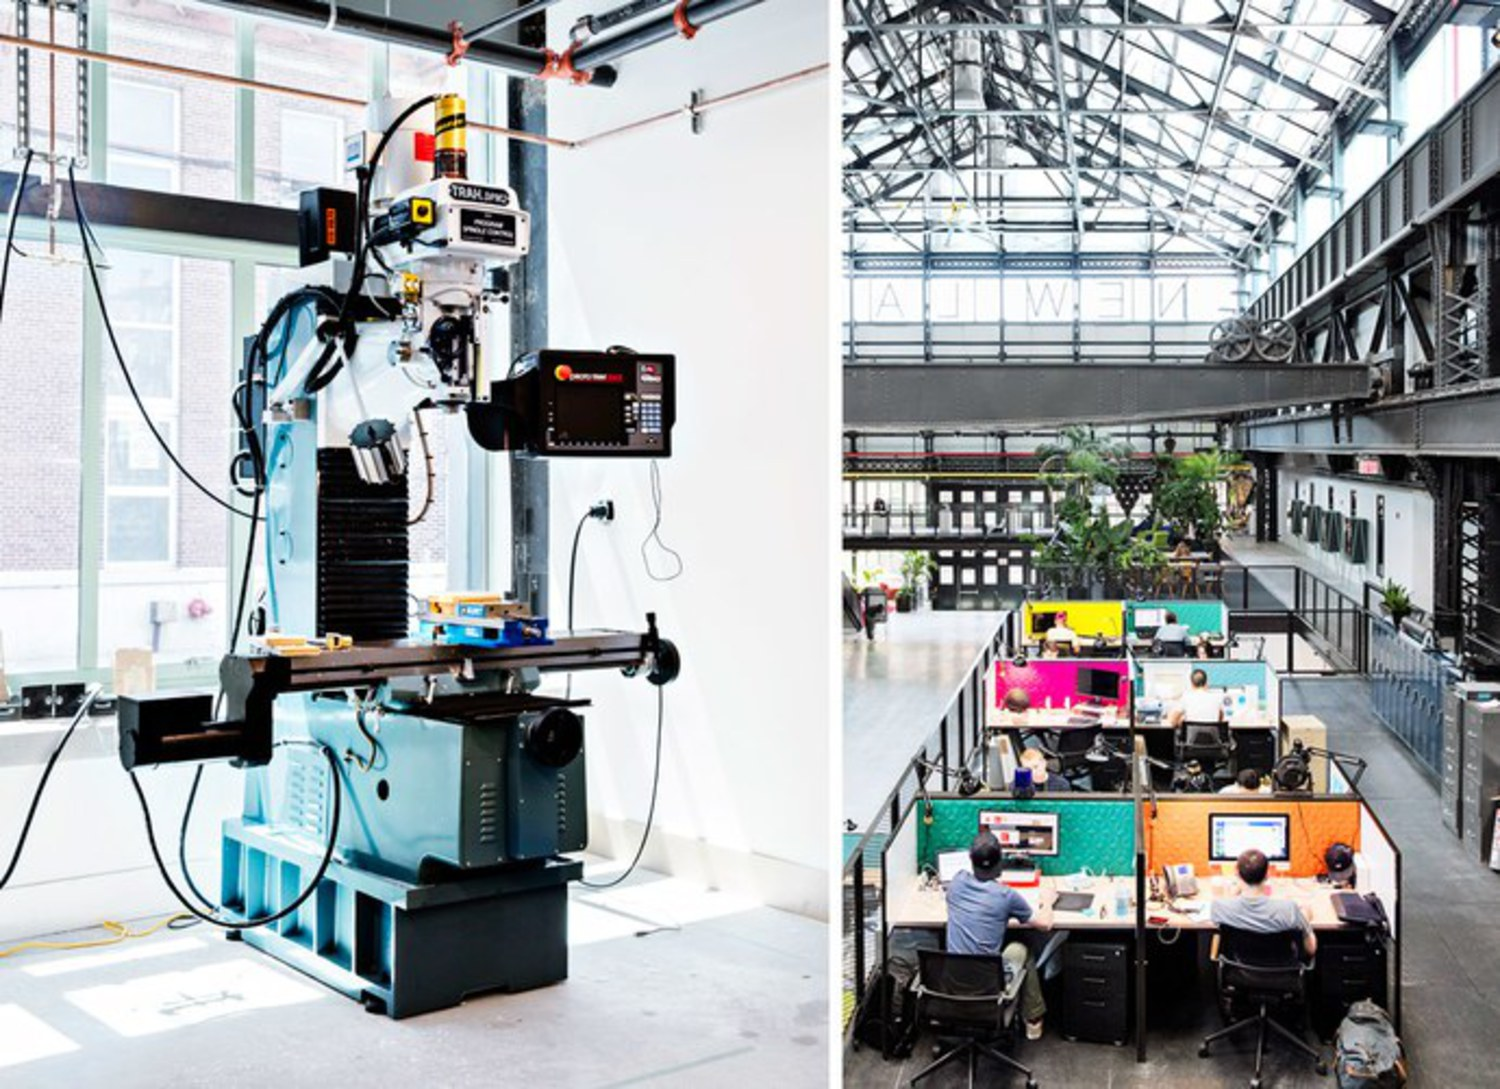 Left, a milling machine in the prototype shop; Right, New Lab, a center for engineers, designers, and entrepreneurs under one roof.